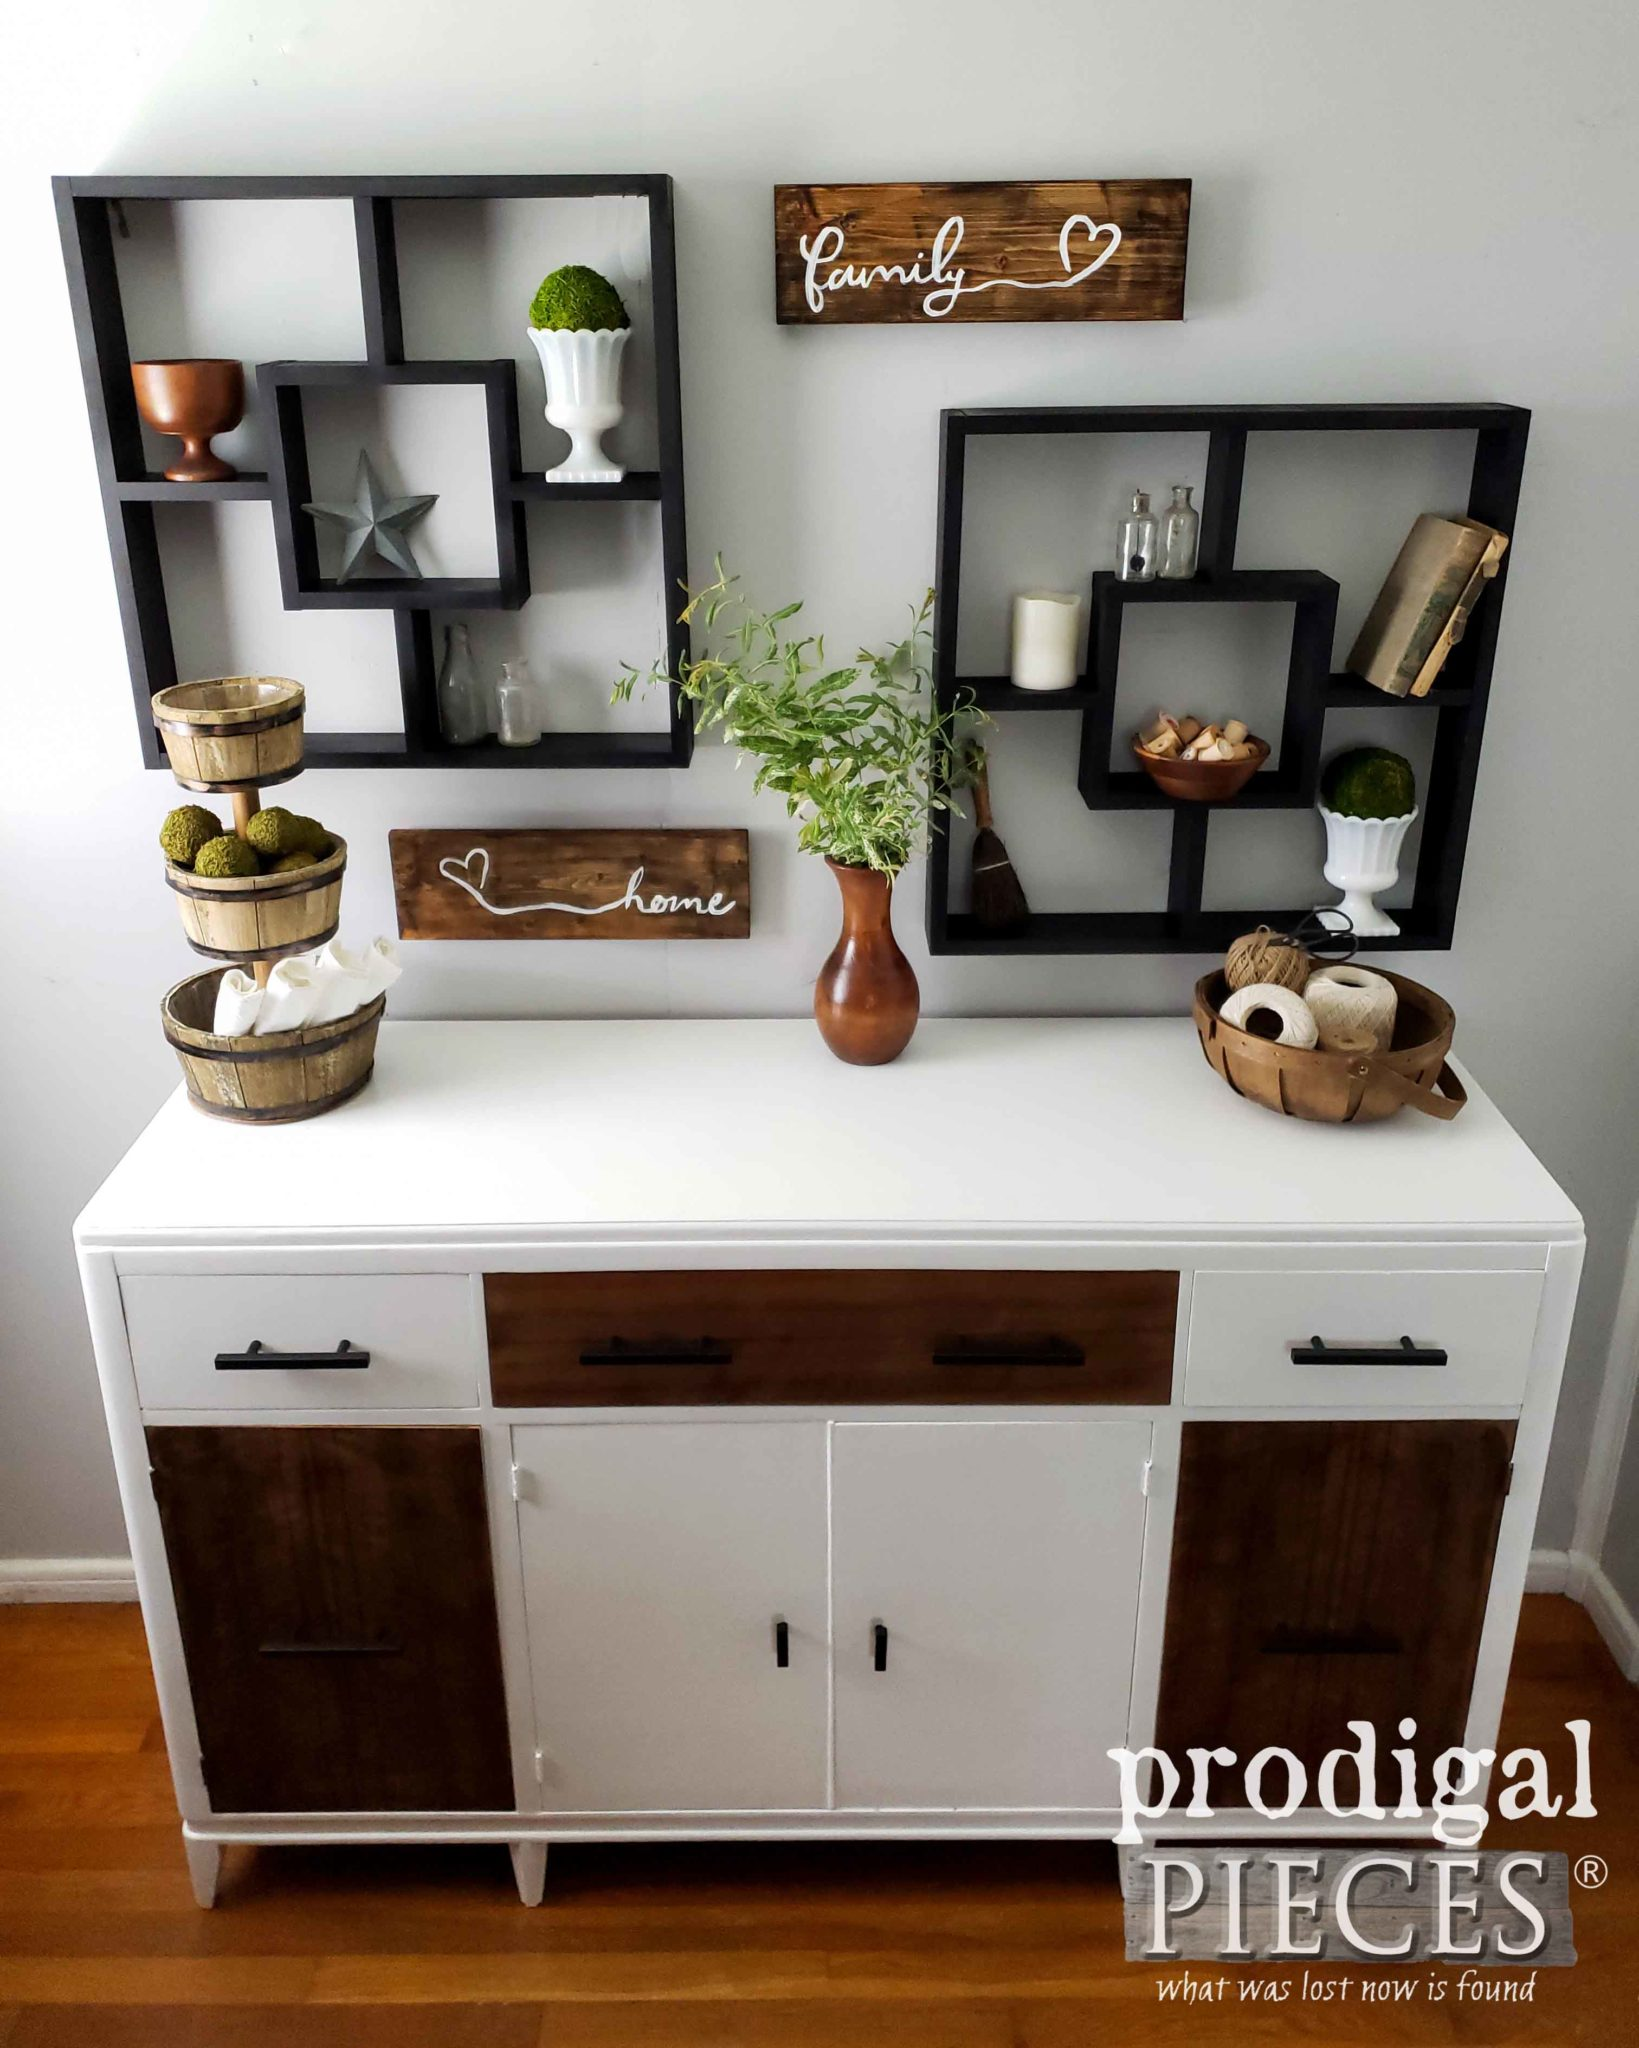 Wood and White Vintage Buffet Top | Modern Farmhouse Style Decor by Larissa of Prodigal Pieces | prodigalpieces.com